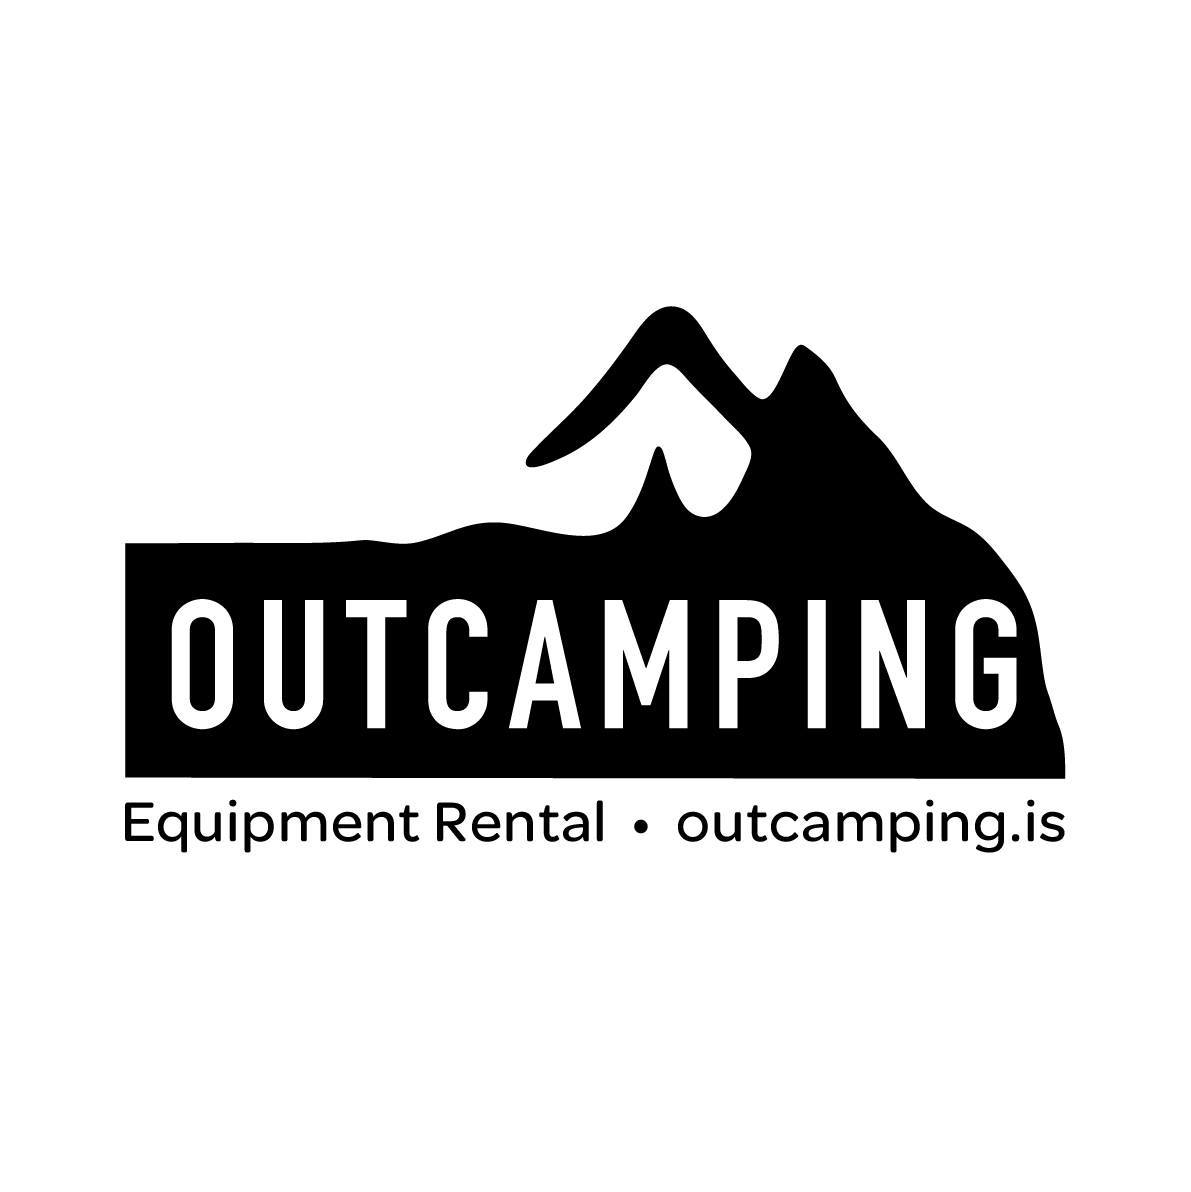 Outcamping – Camping Equipment rental in Iceland